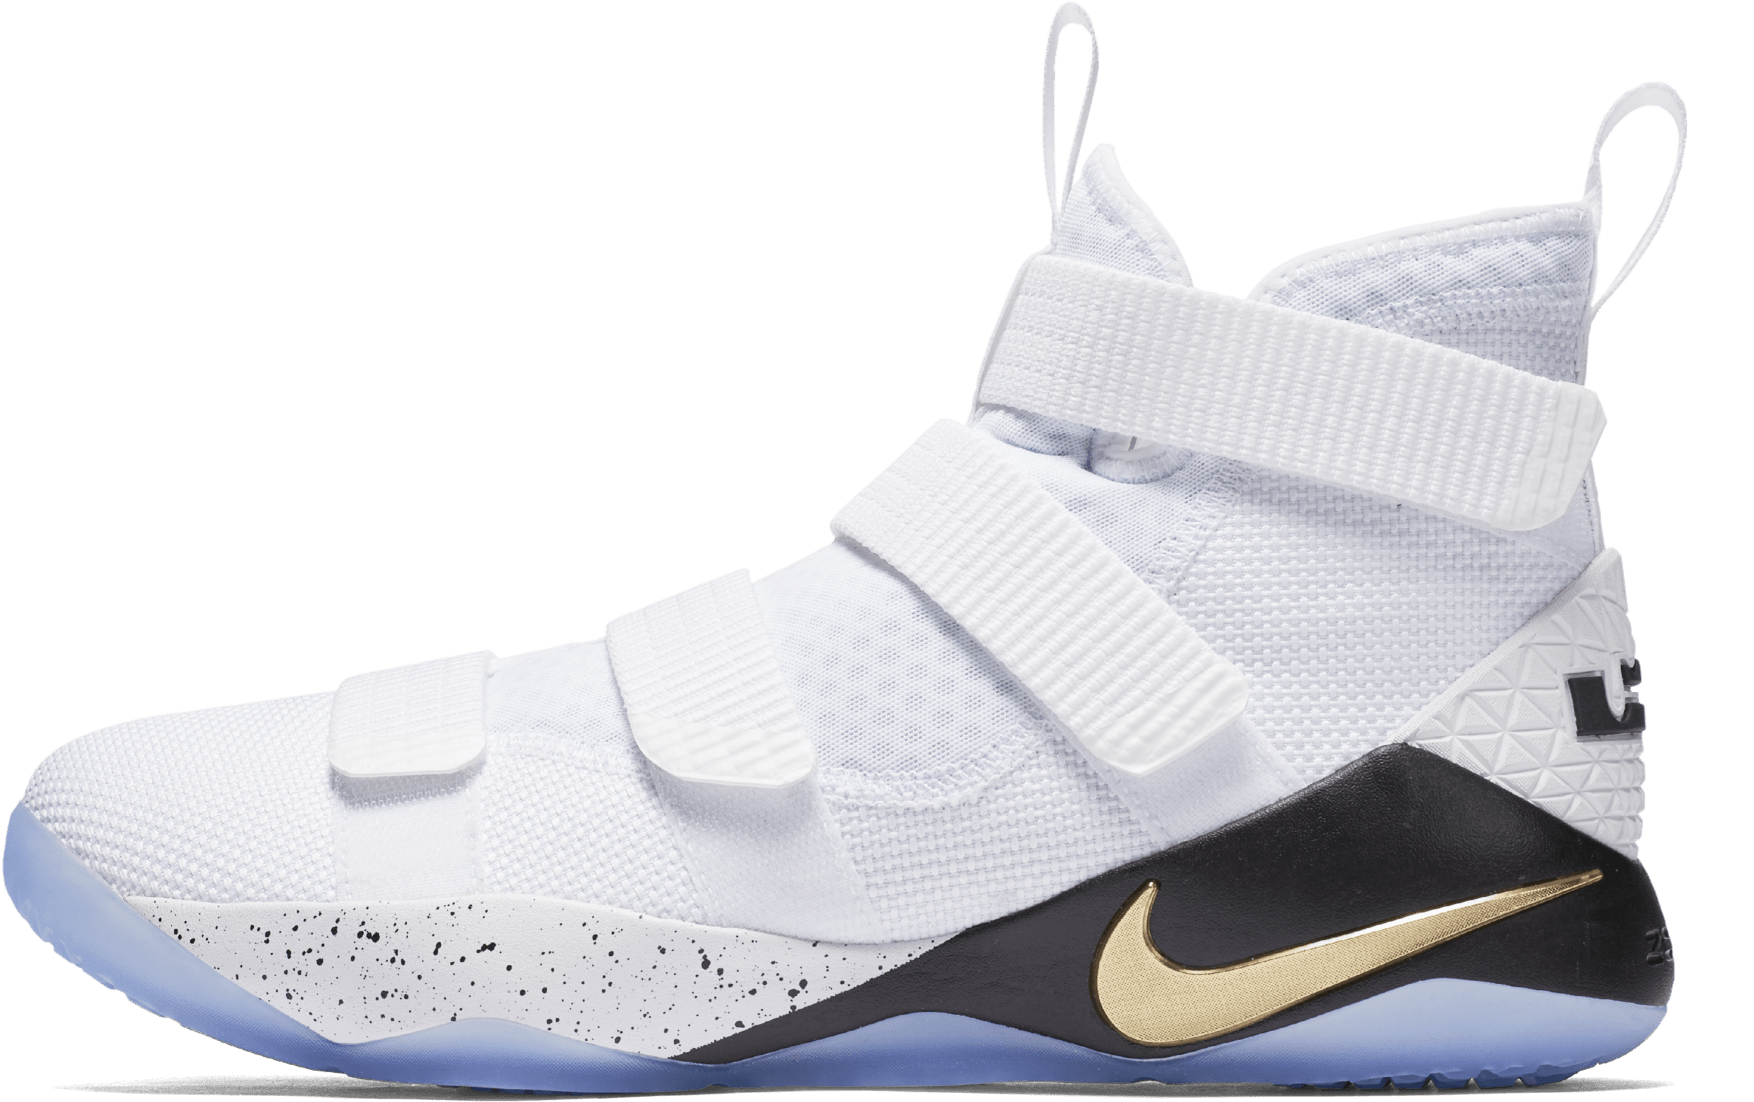 Nike LeBron Soldier 11 Nike Lebron Soldier 11 Performance Review